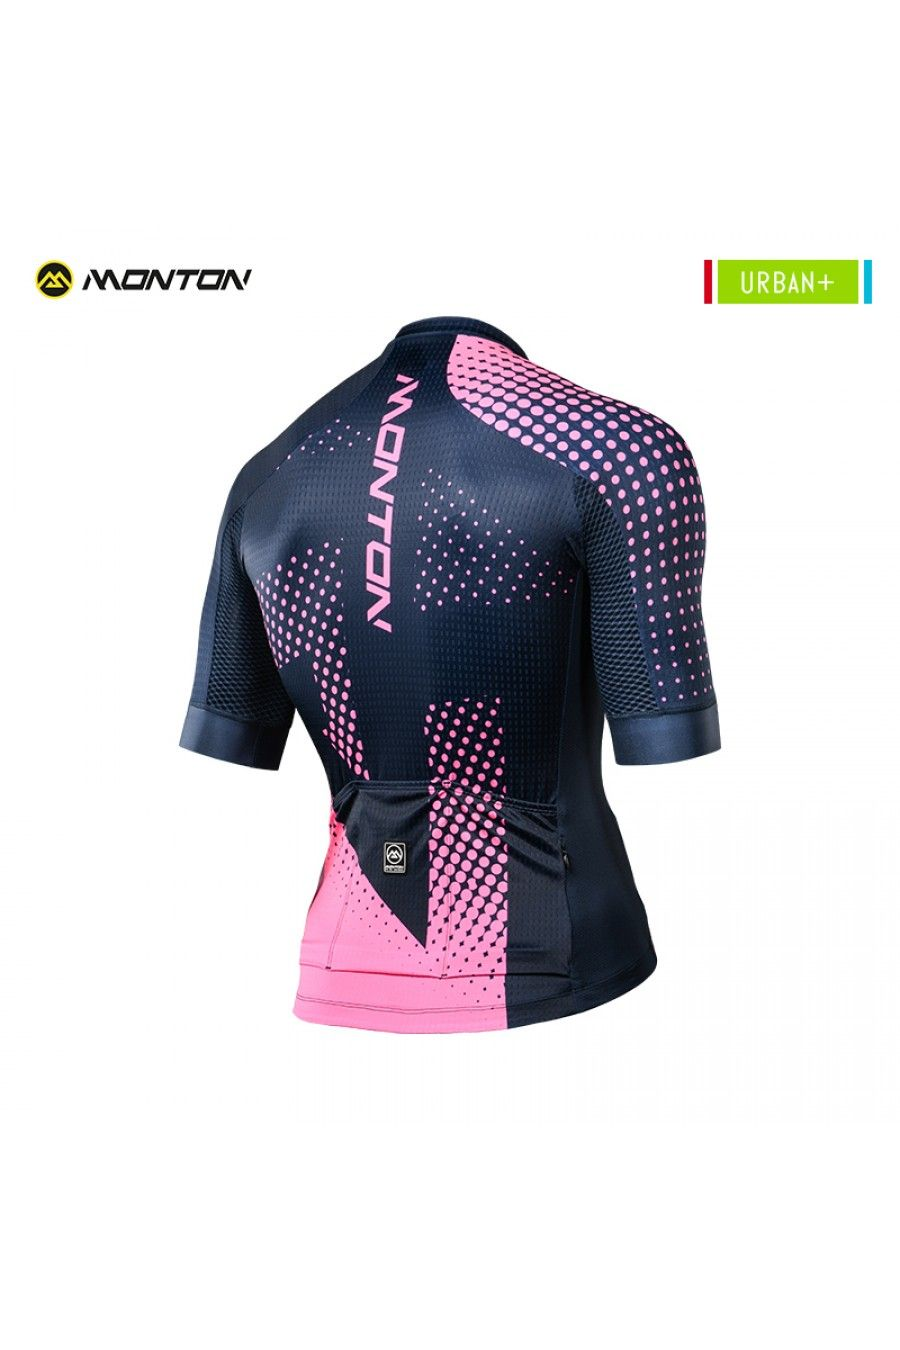 Mens Cycling Jersey With Images Cycling Jersey Cycling